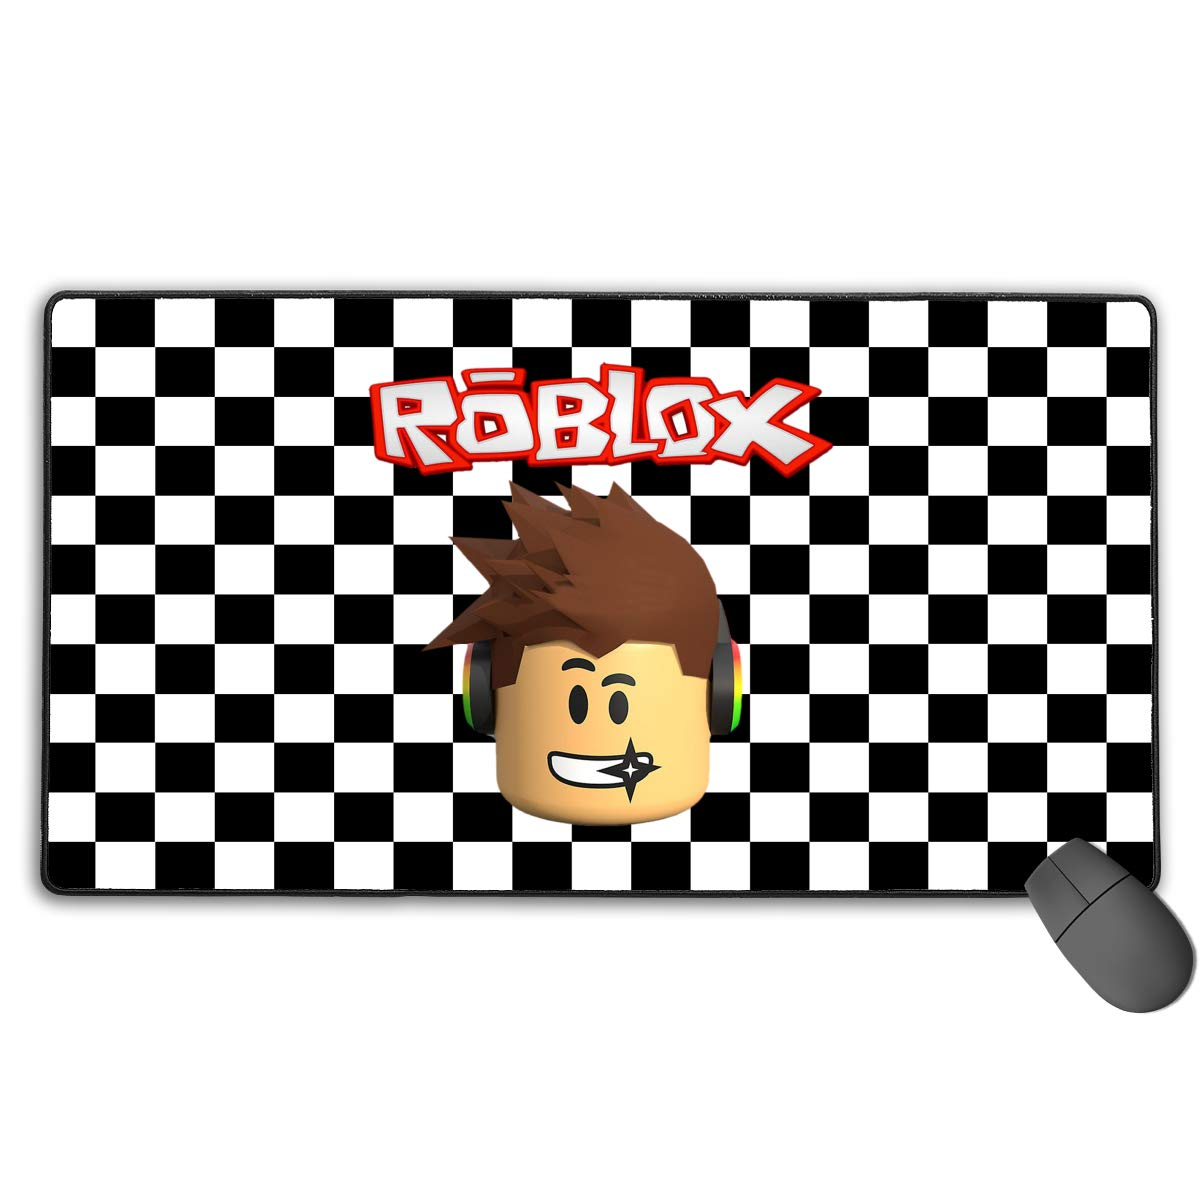 Amazon com : Roblox Character Head Large Gaming Mouse Pad